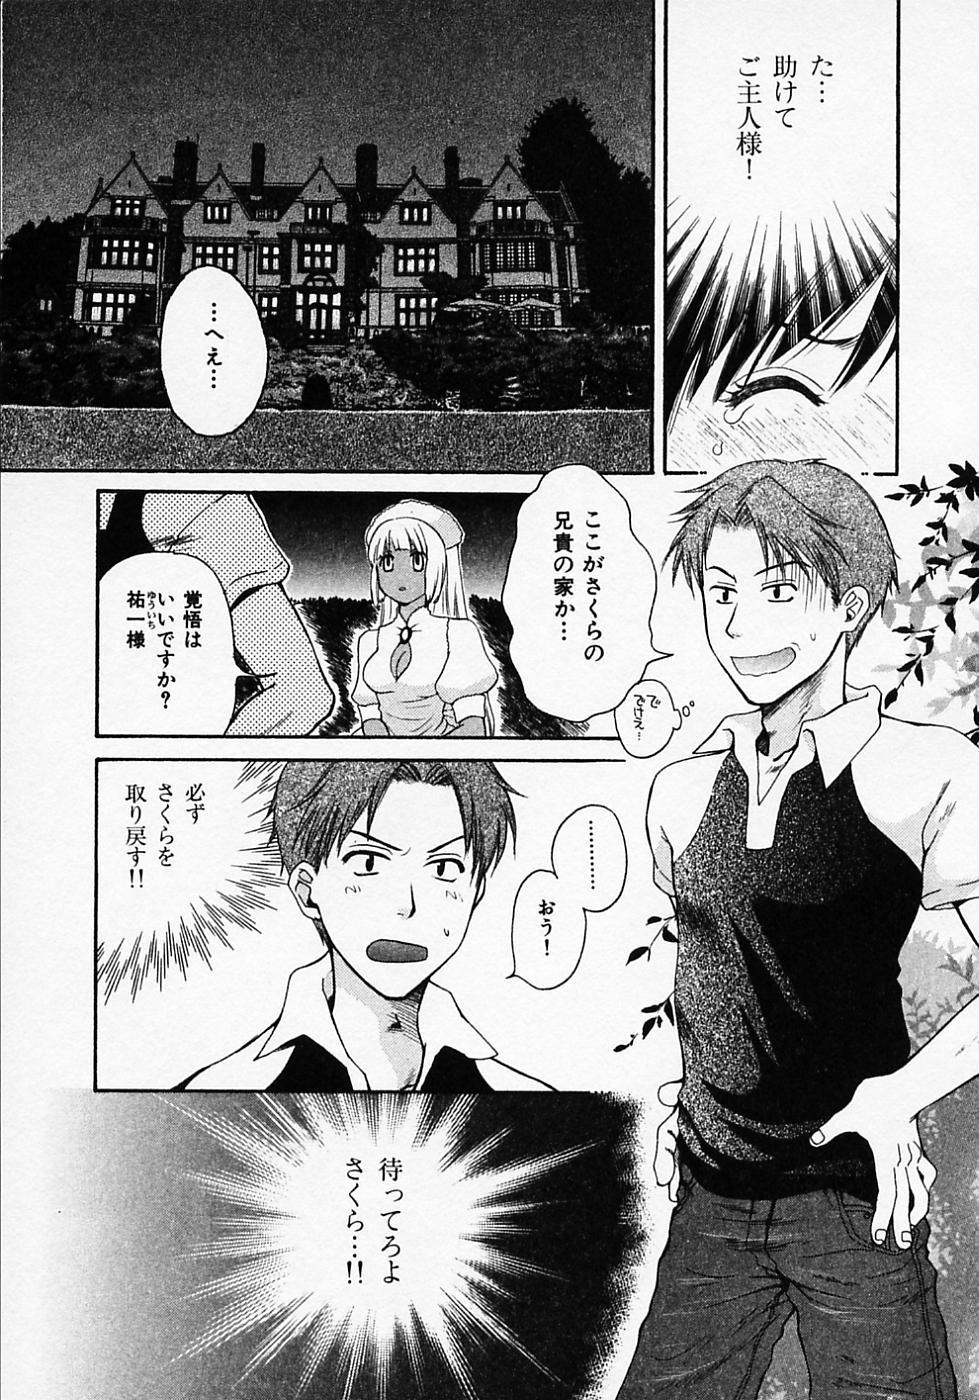 Maid In Japan 112